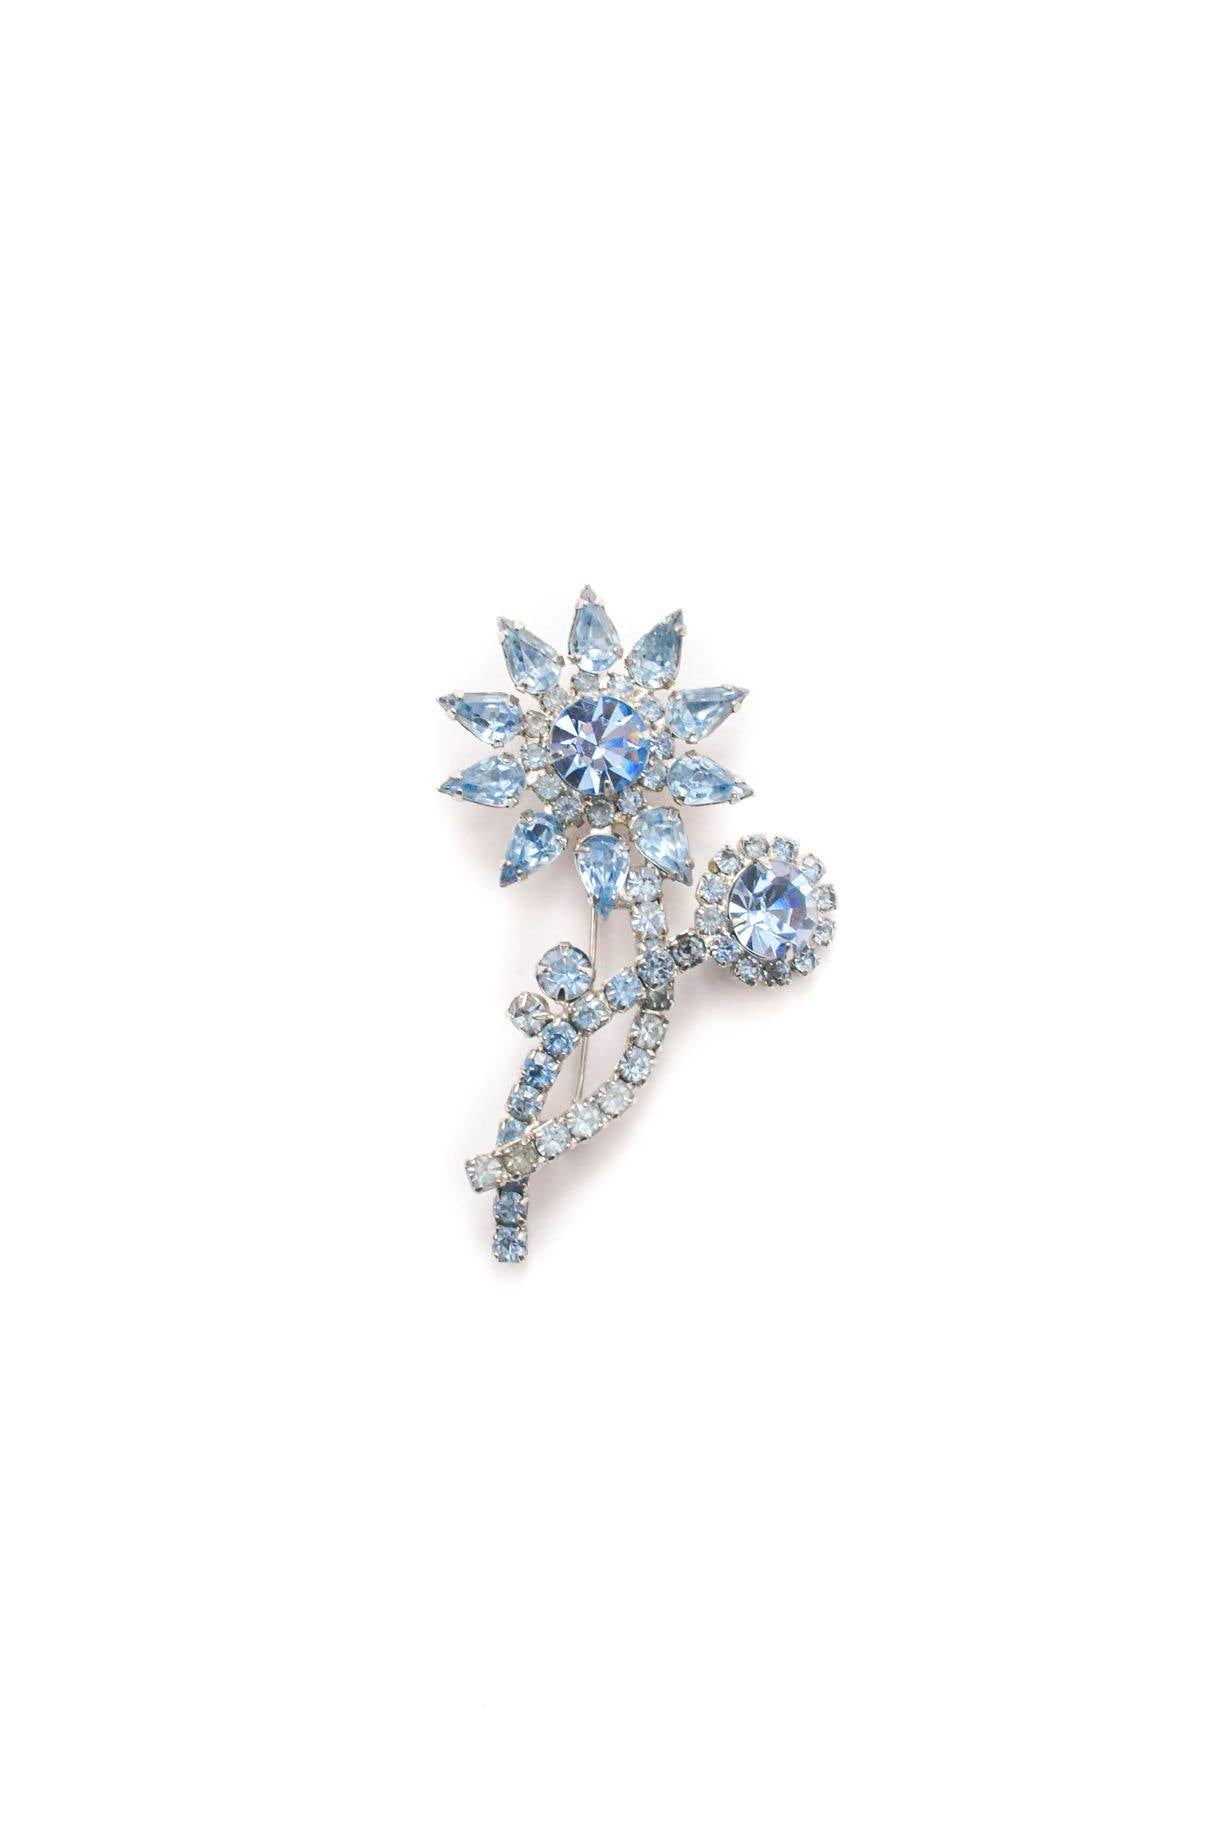 Vintage Blue Rhinestone Stem Brooch from Sweet and Spark.